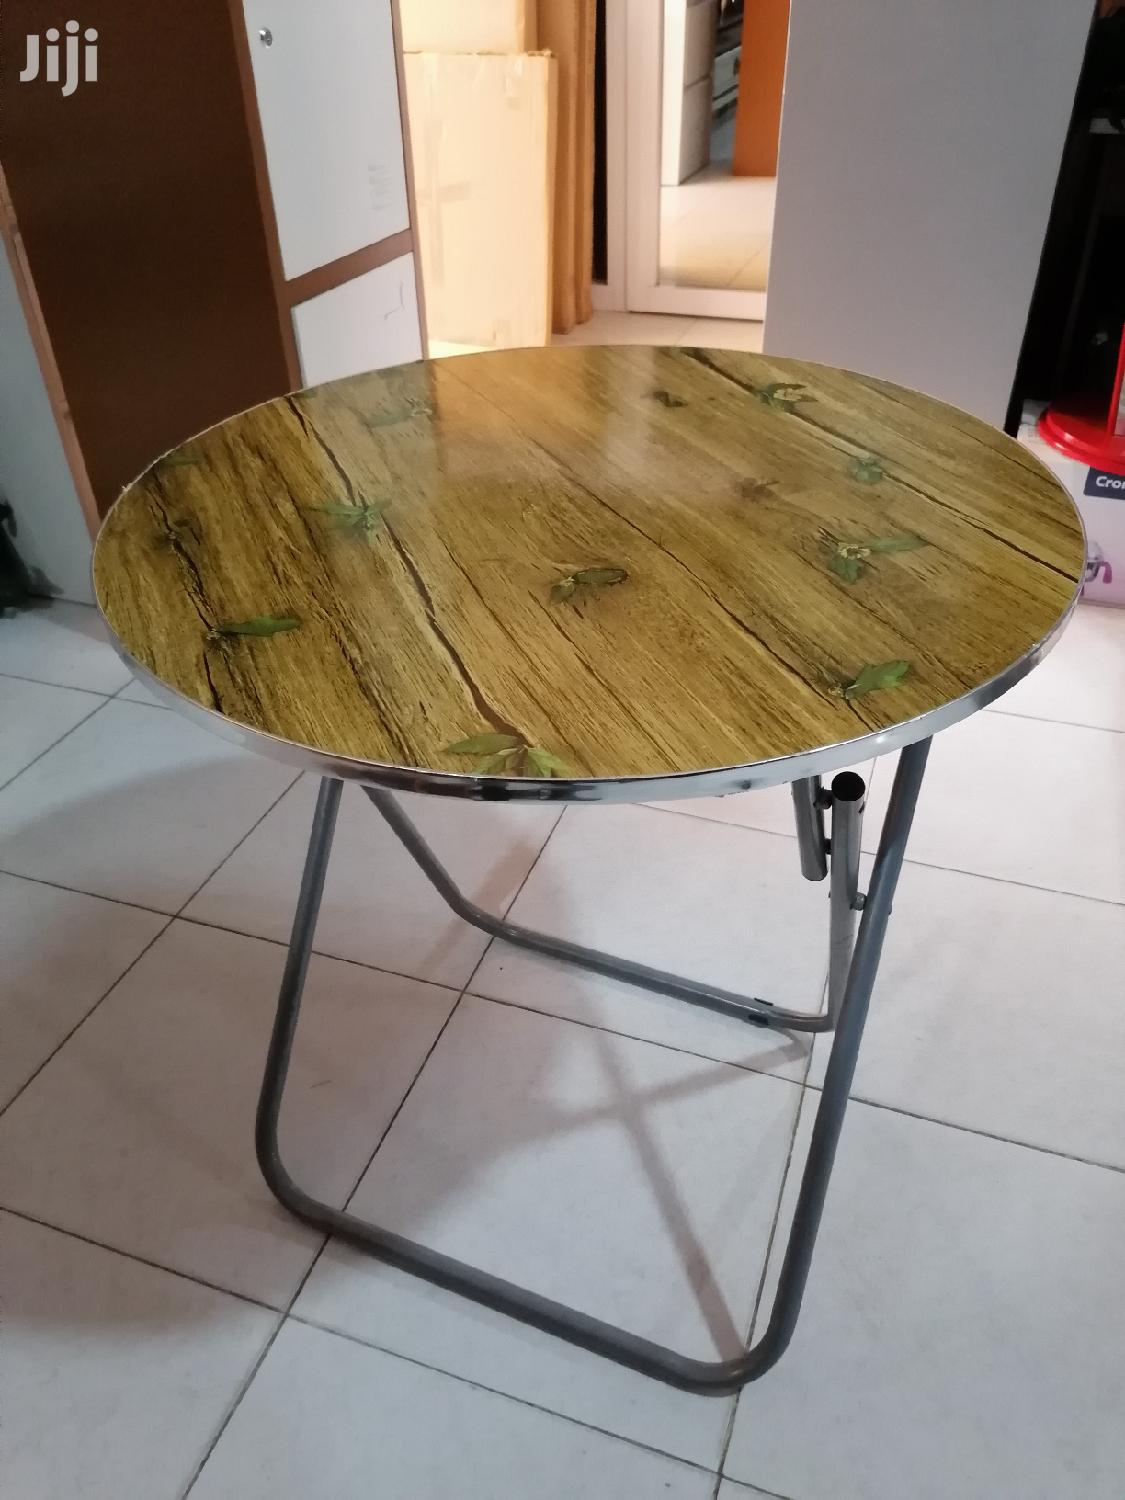 Quality Foldable Table | Furniture for sale in Adabraka, Greater Accra, Ghana